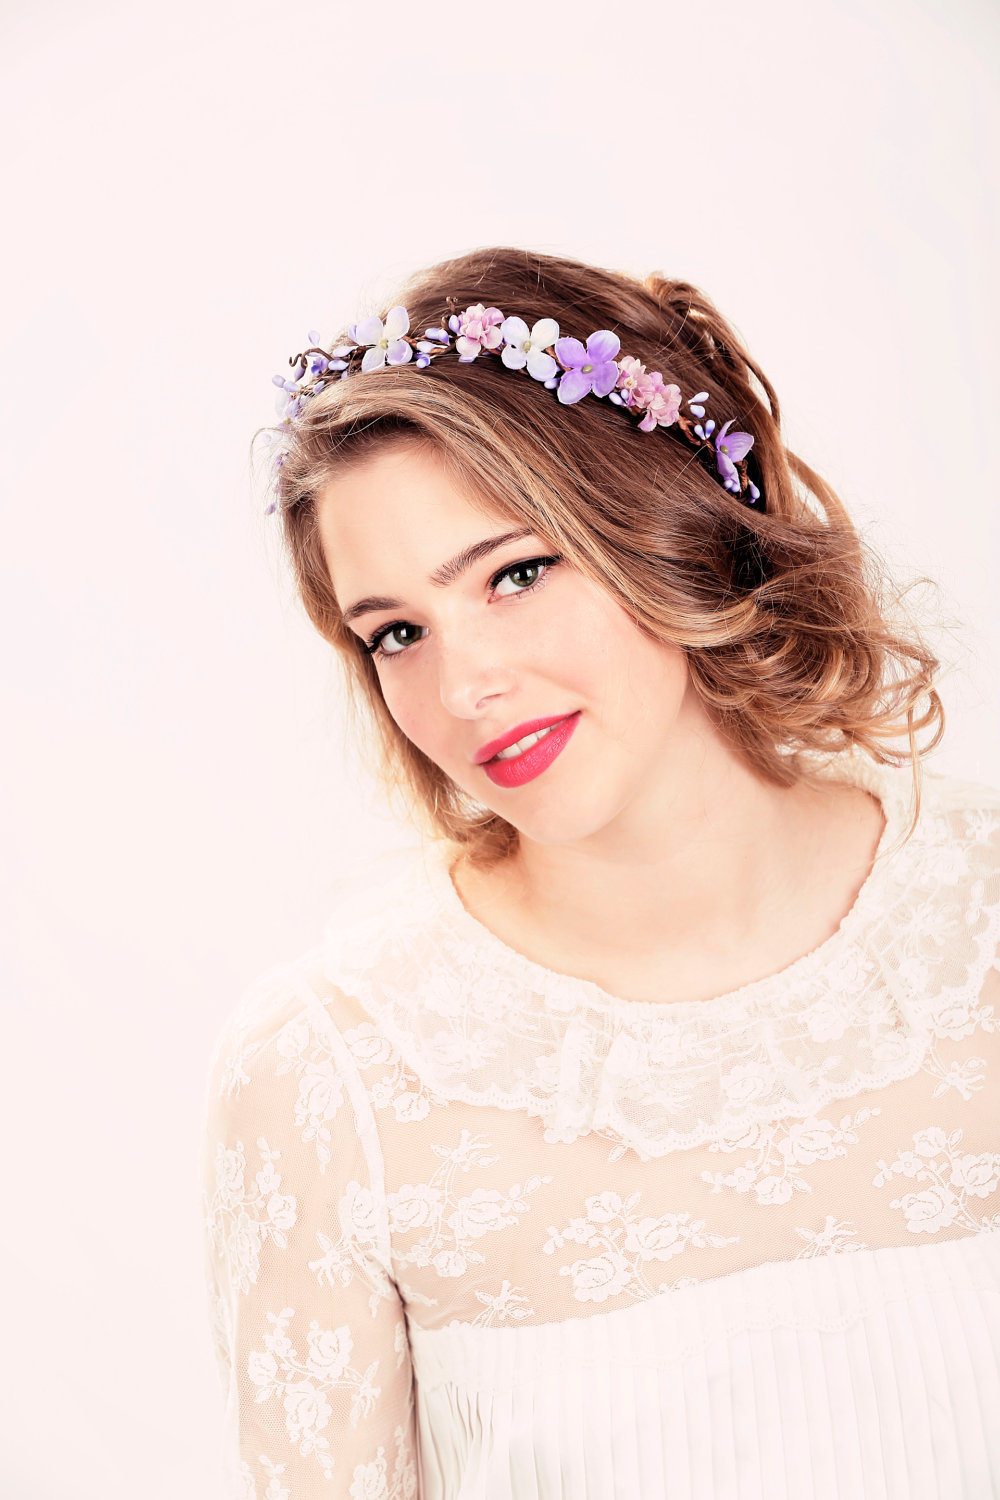 Bridal flower crown purple flower woodland wedding wedding hair bridal flower crown purple flower woodland wedding wedding hair accessory izmirmasajfo